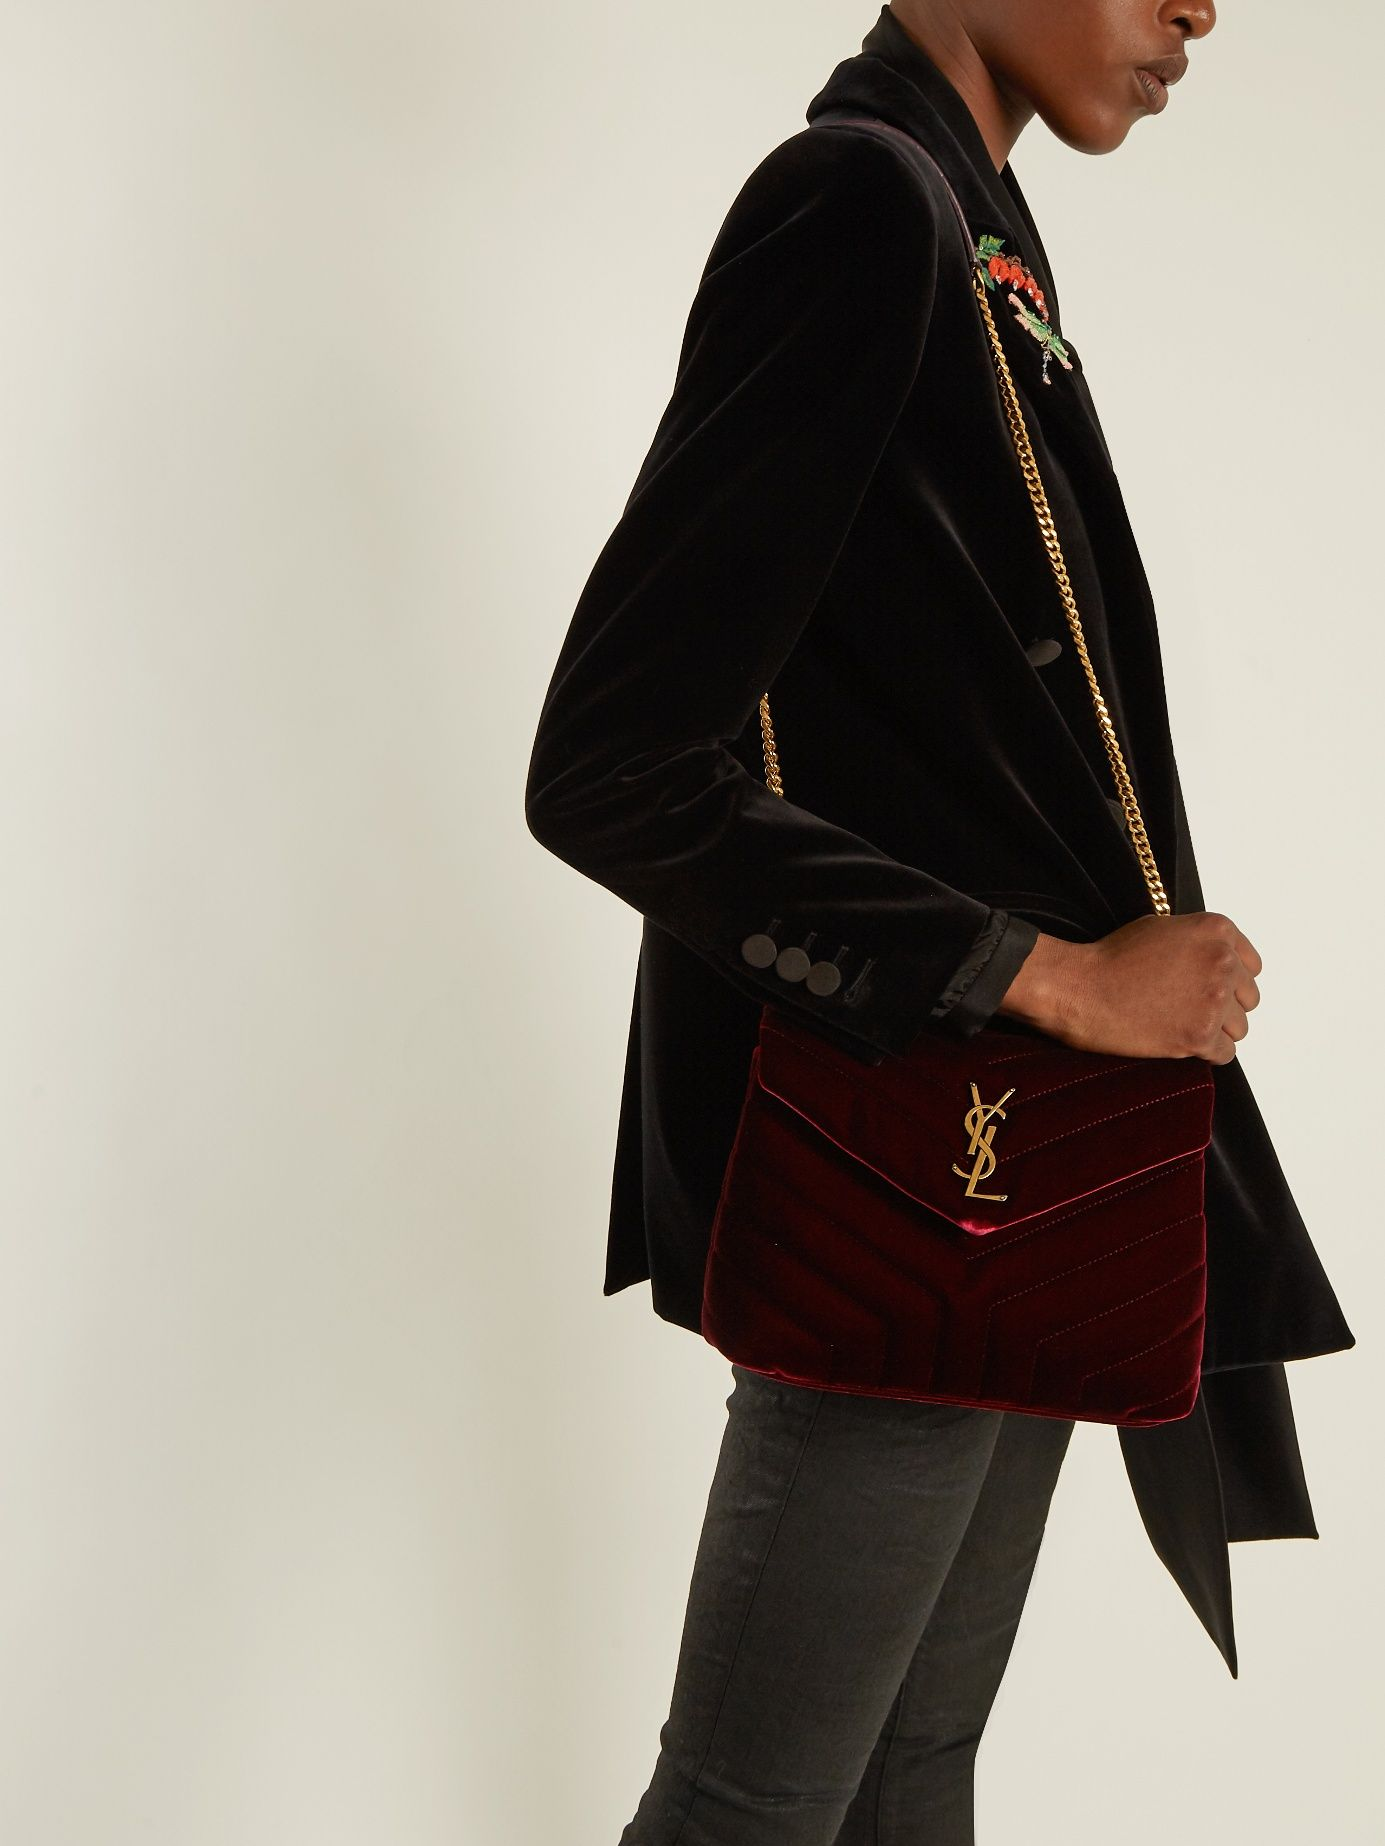 3ed3a6beddfb1 Click here to buy Saint Laurent Loulou velvet shoulder bag at  MATCHESFASHION.COM